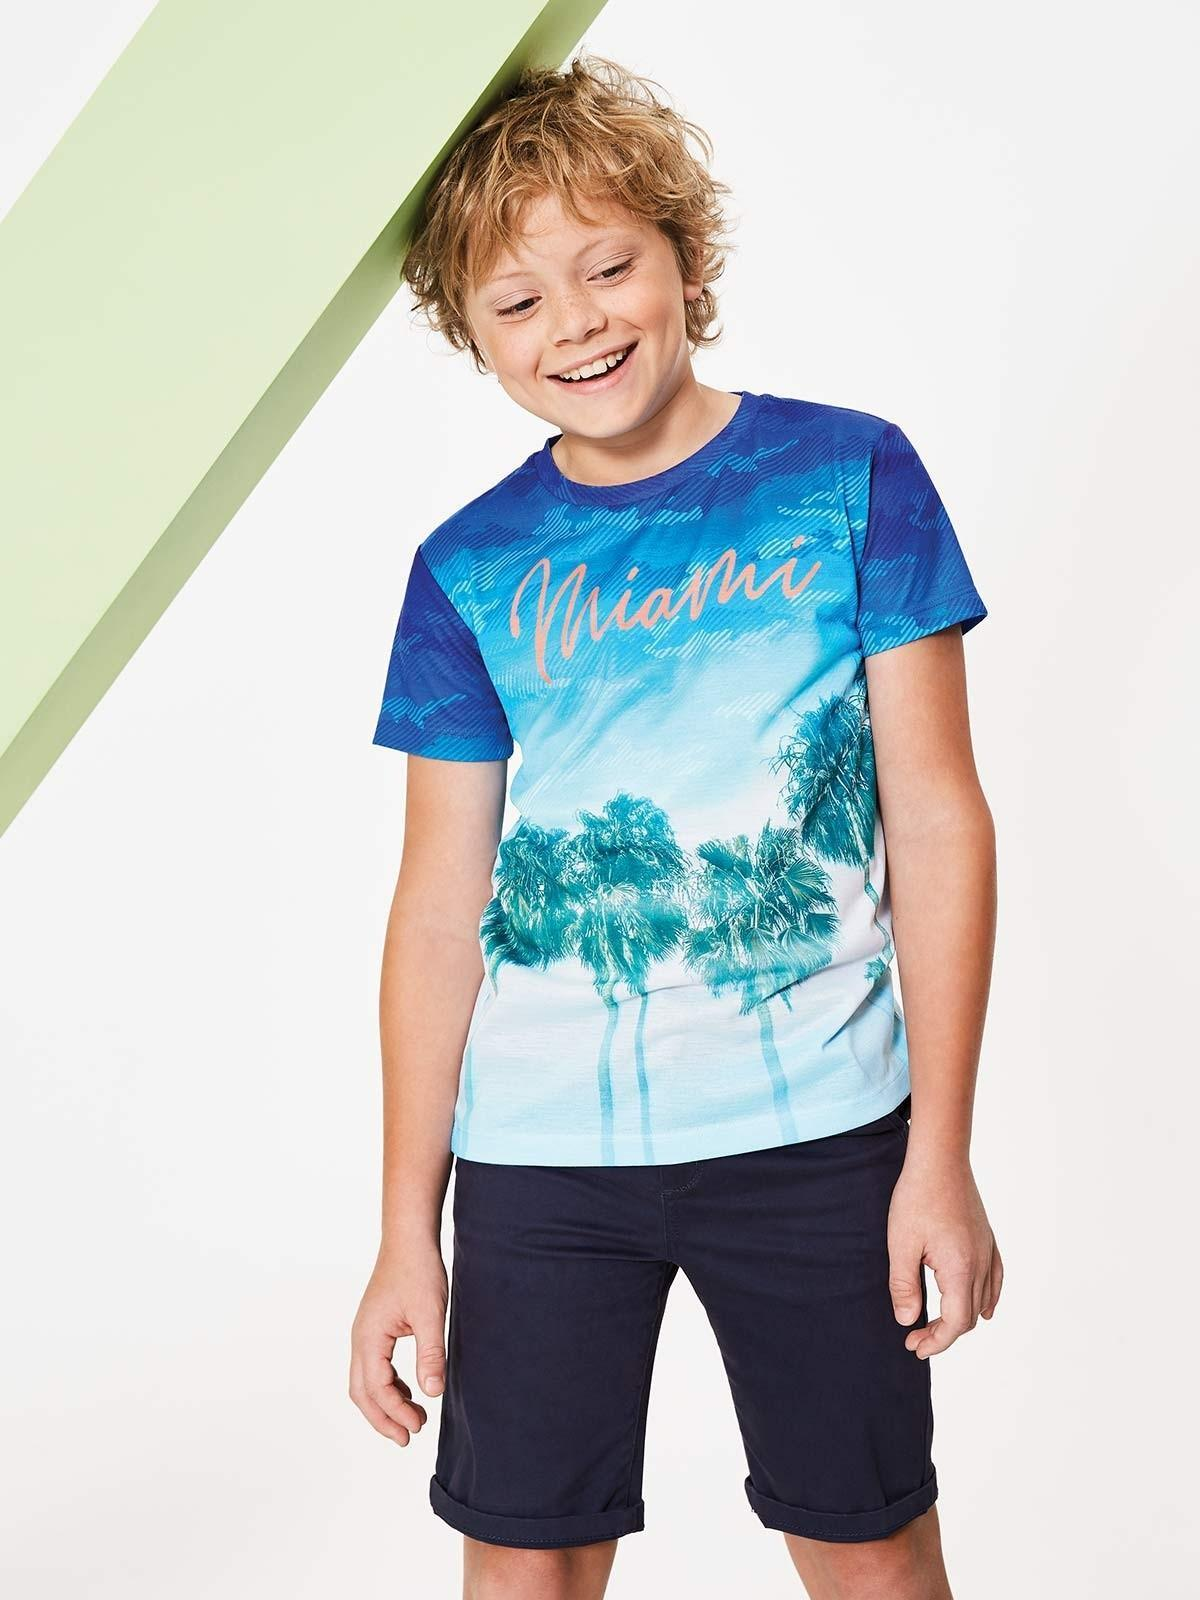 You can't go wrong with a palm tree print; this boy's t-shirt oozes cool both on and off the beach.